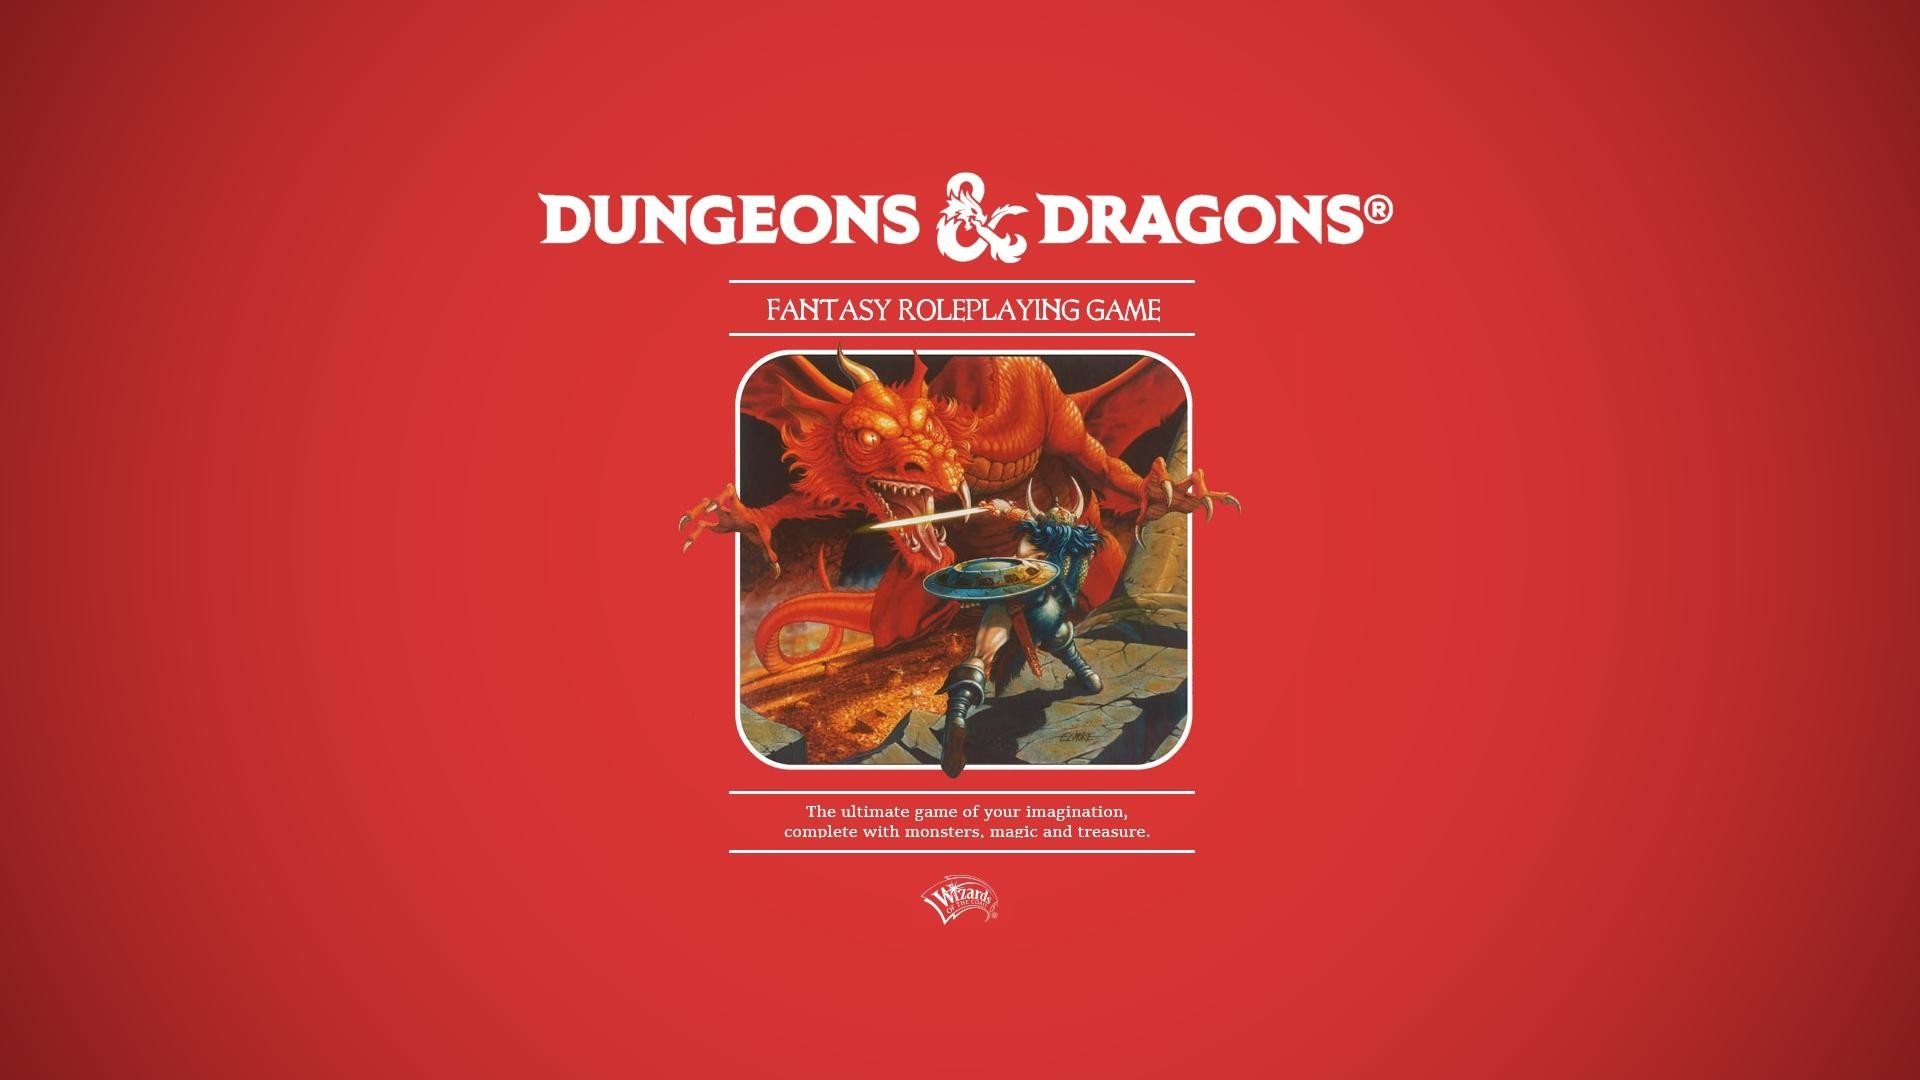 70 Dungeons And Dragons Wallpaper 1920 1080